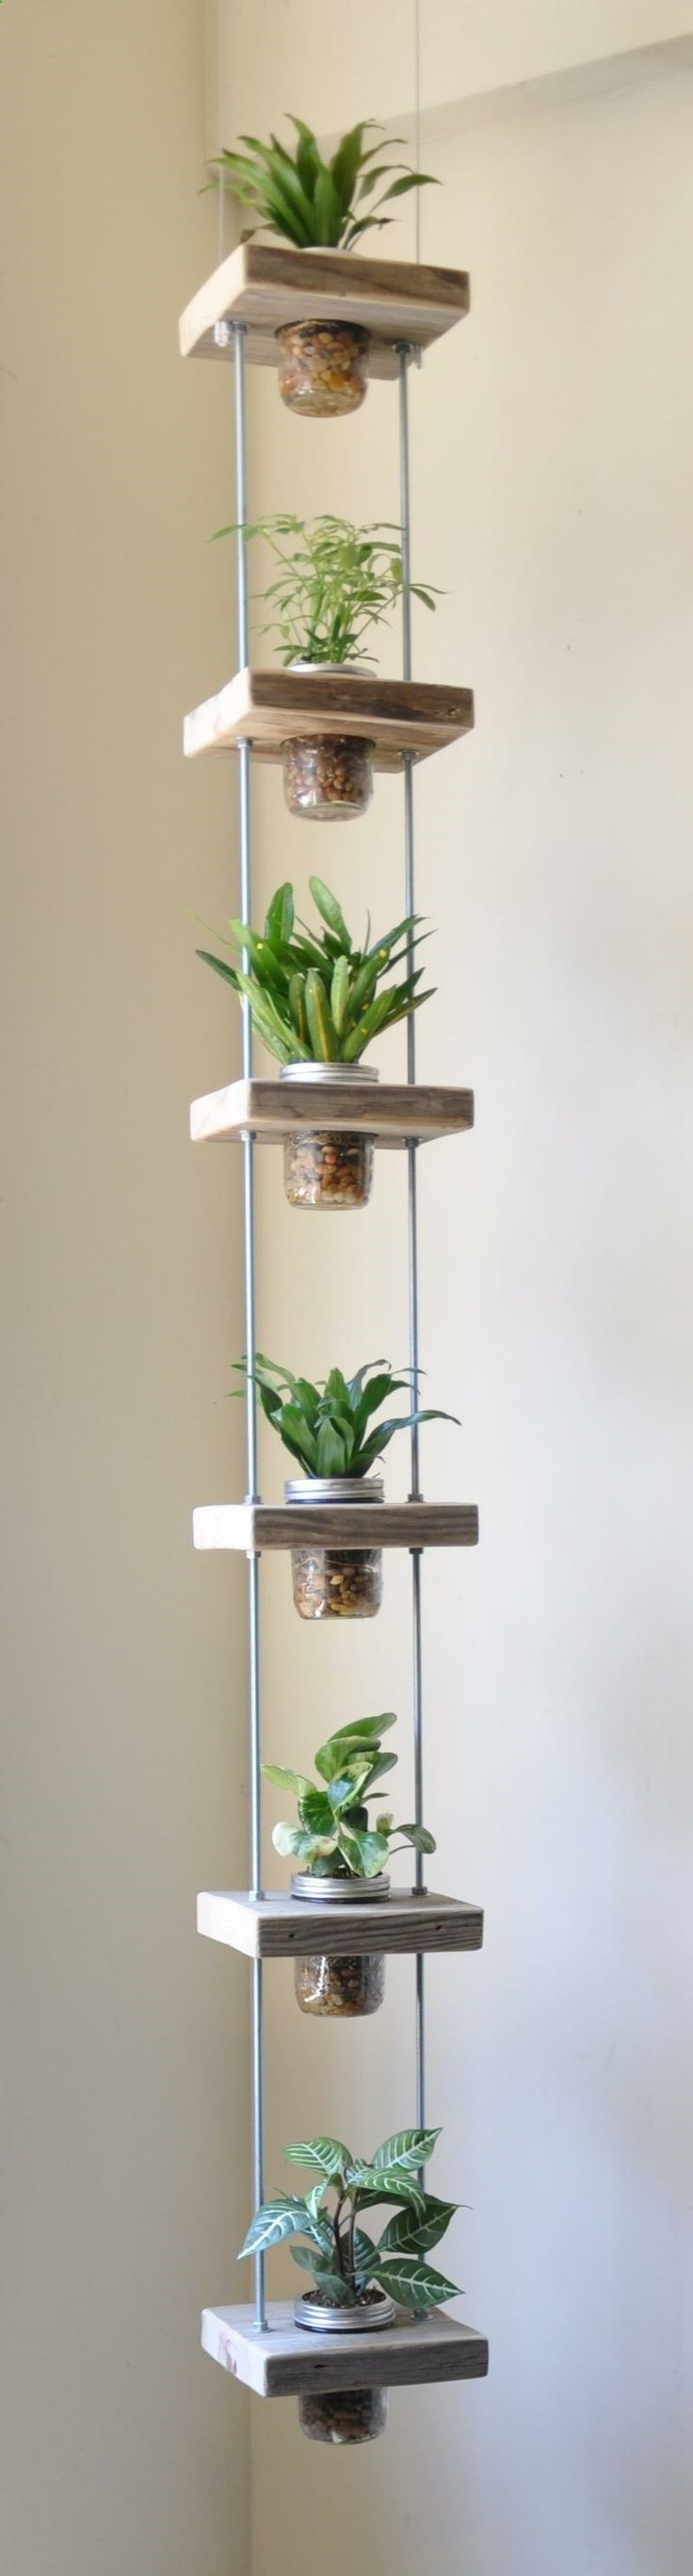 Great as a vertical herb garden. Kitchen ideas.